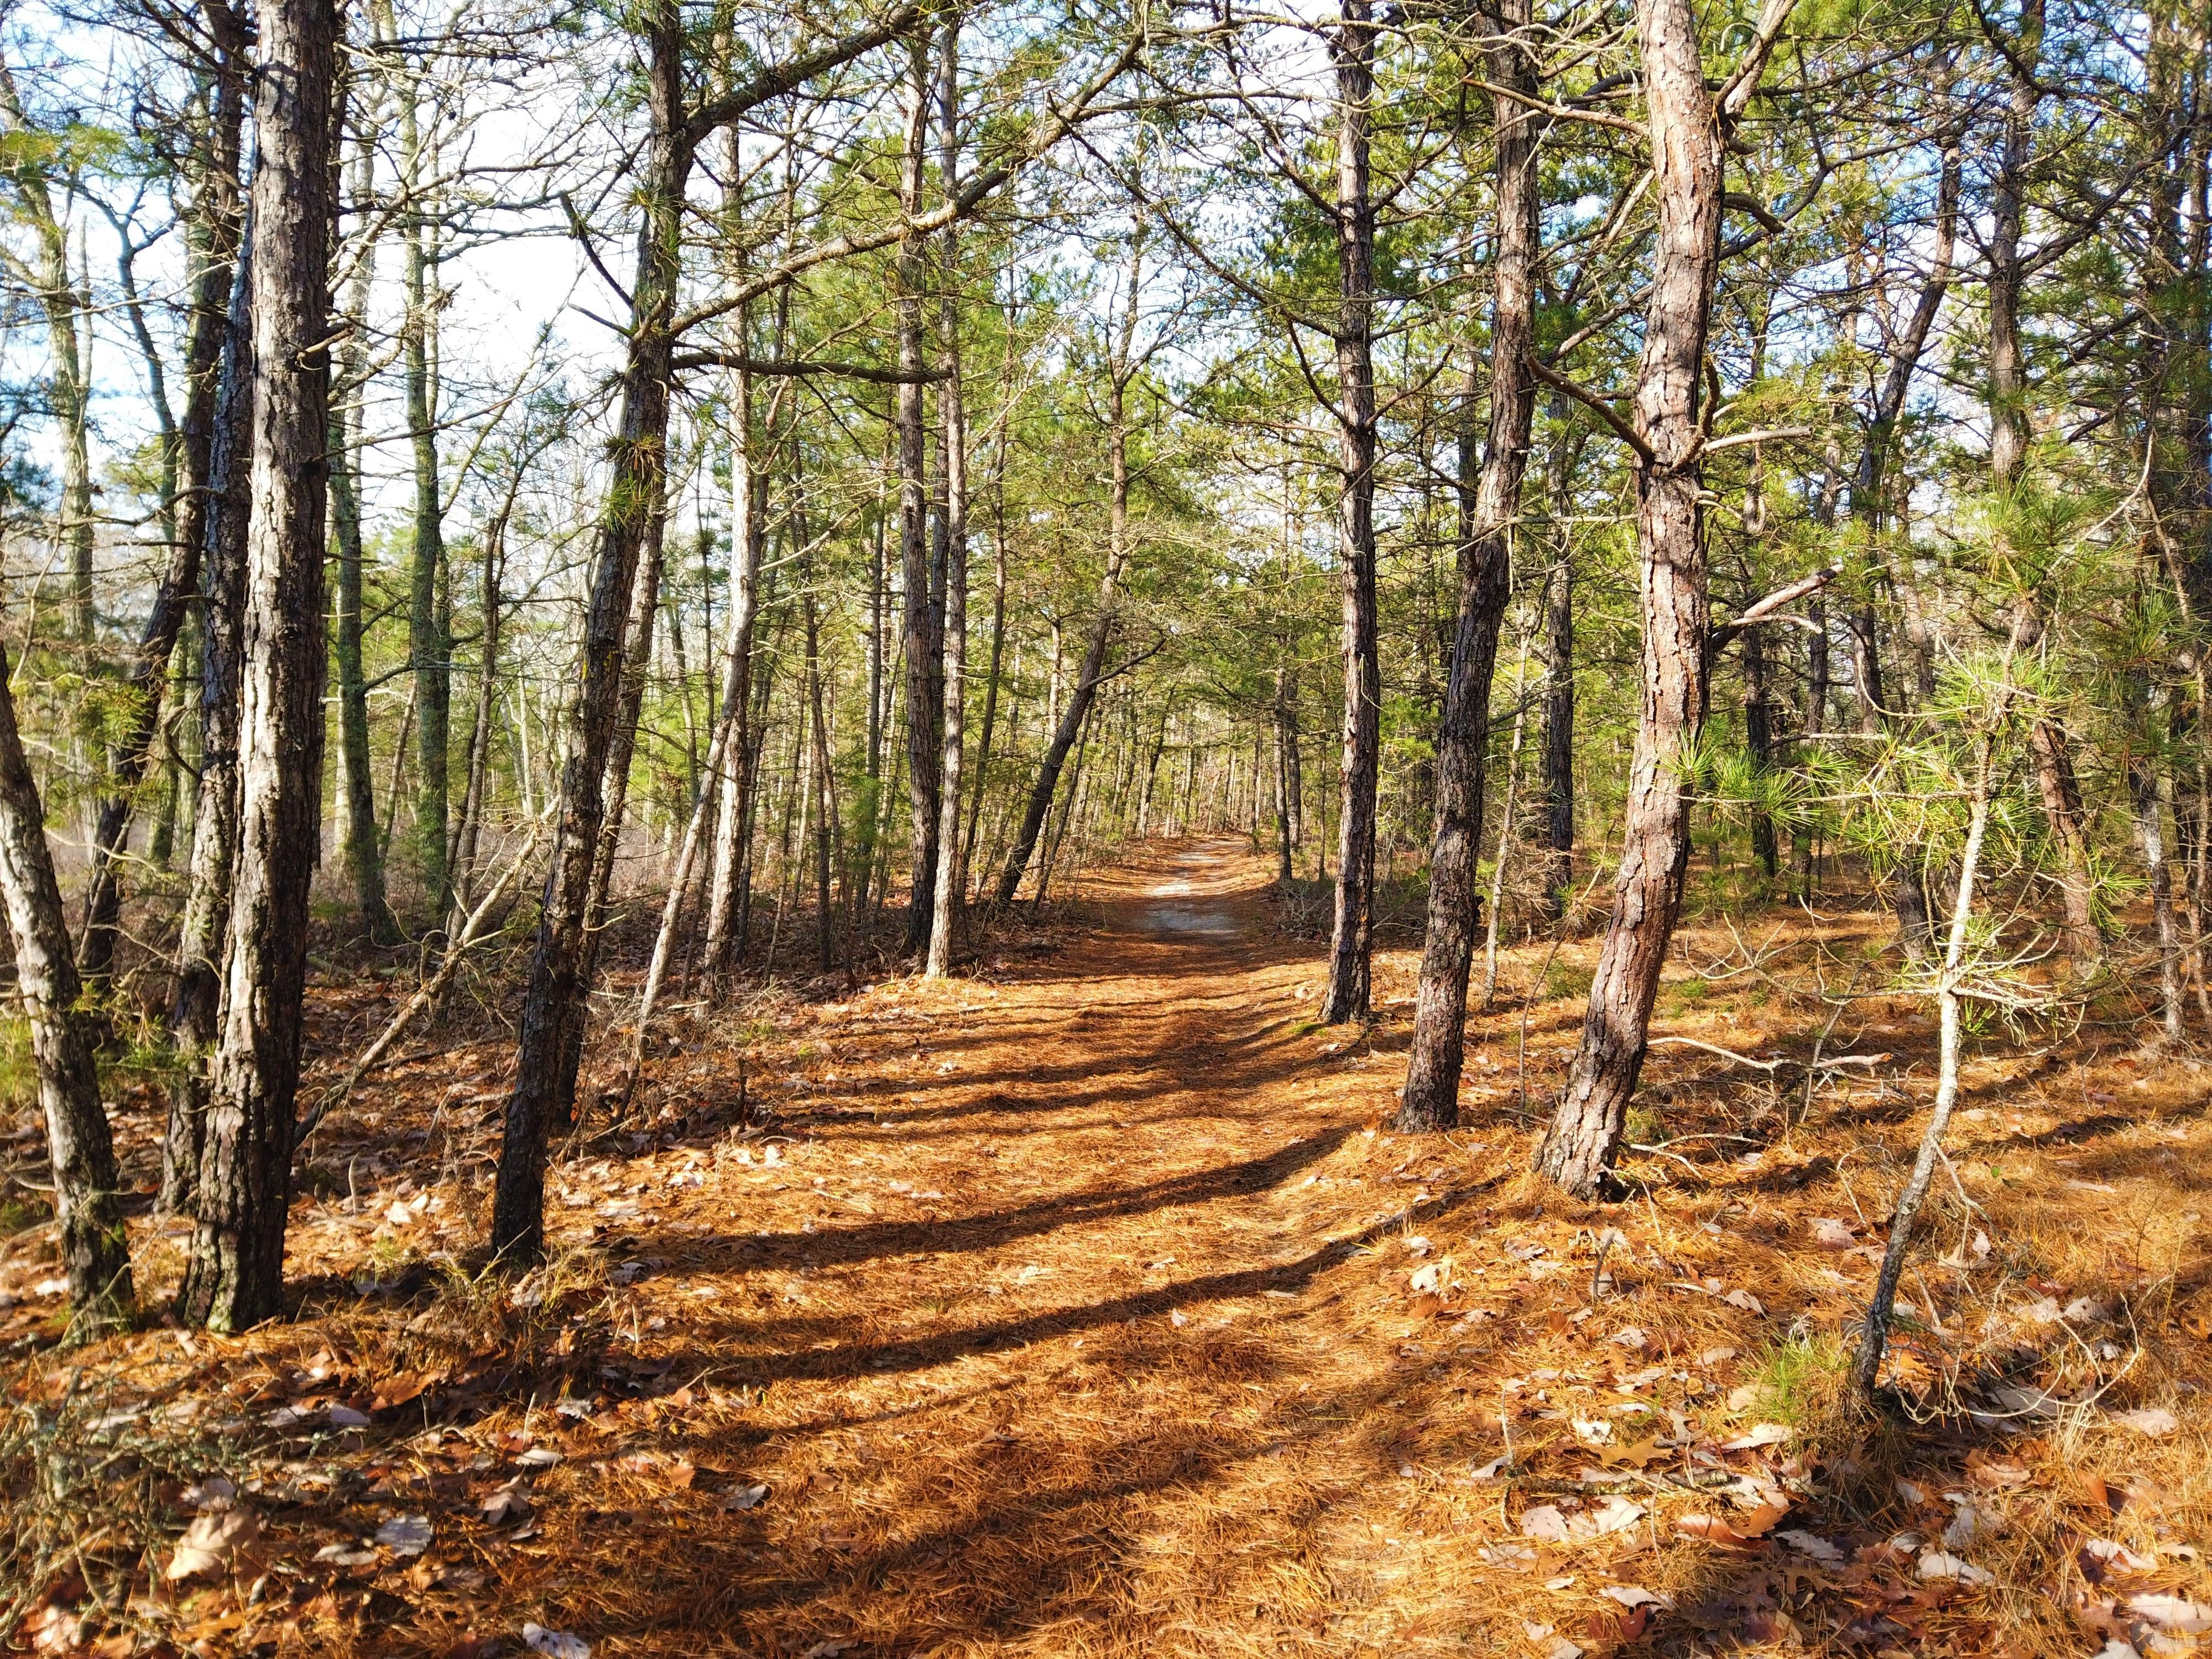 A nature trail is winding through the woods.